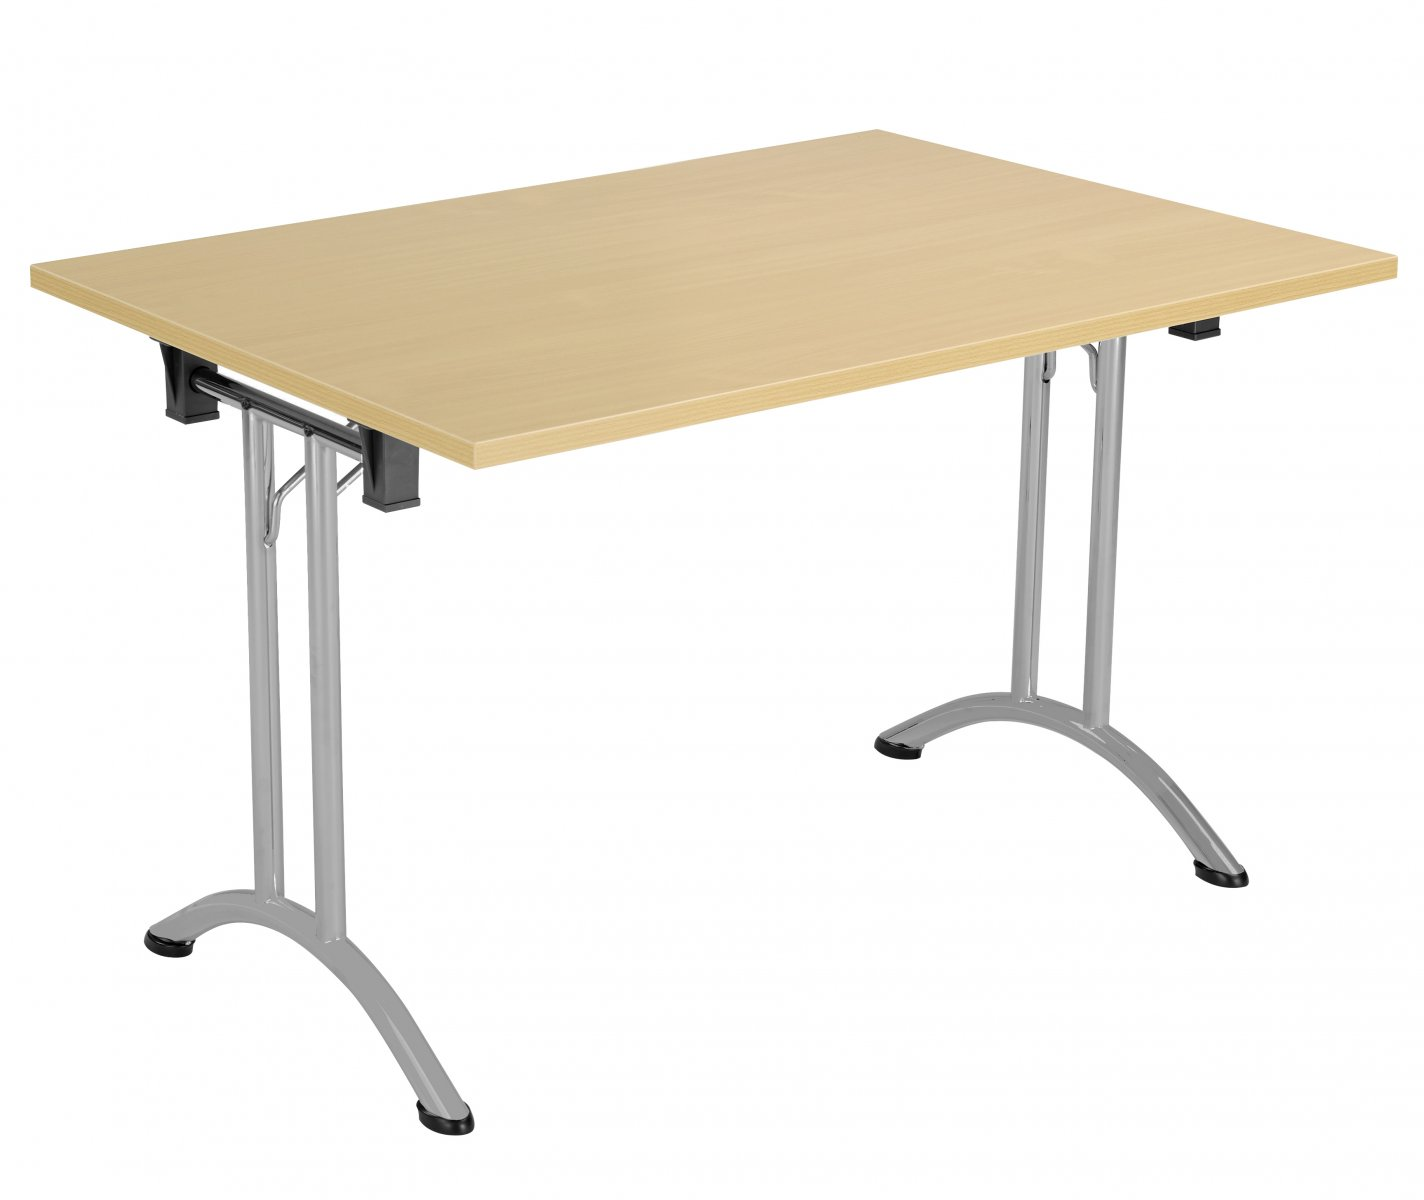 Union Rectangular 120 x 80 Folding Meeting Table - Nova Oak with Silver Frame